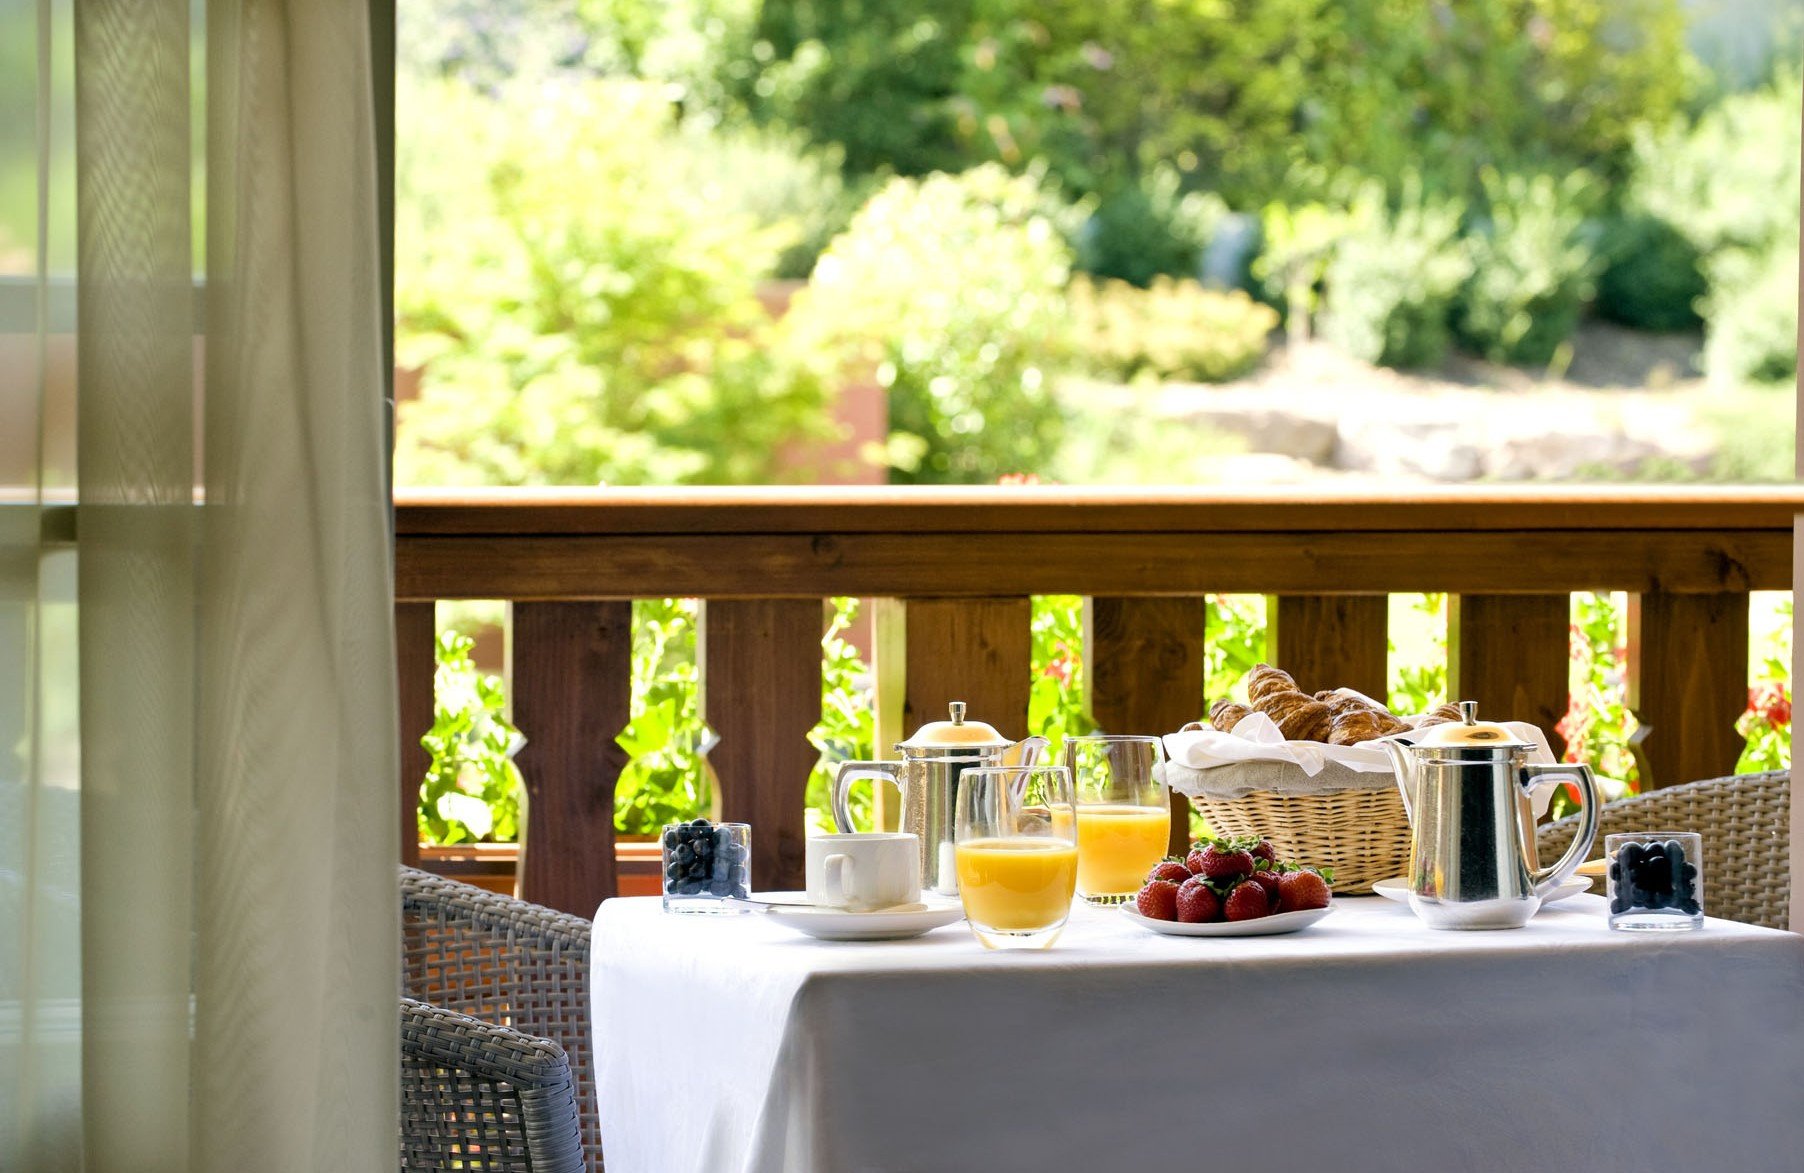 316/Hostellerie_des_Chateaux/Photos/HOTEL_SPA_ALSACE/Contact/4485025aa22721443439a2eaf261348f.jpg